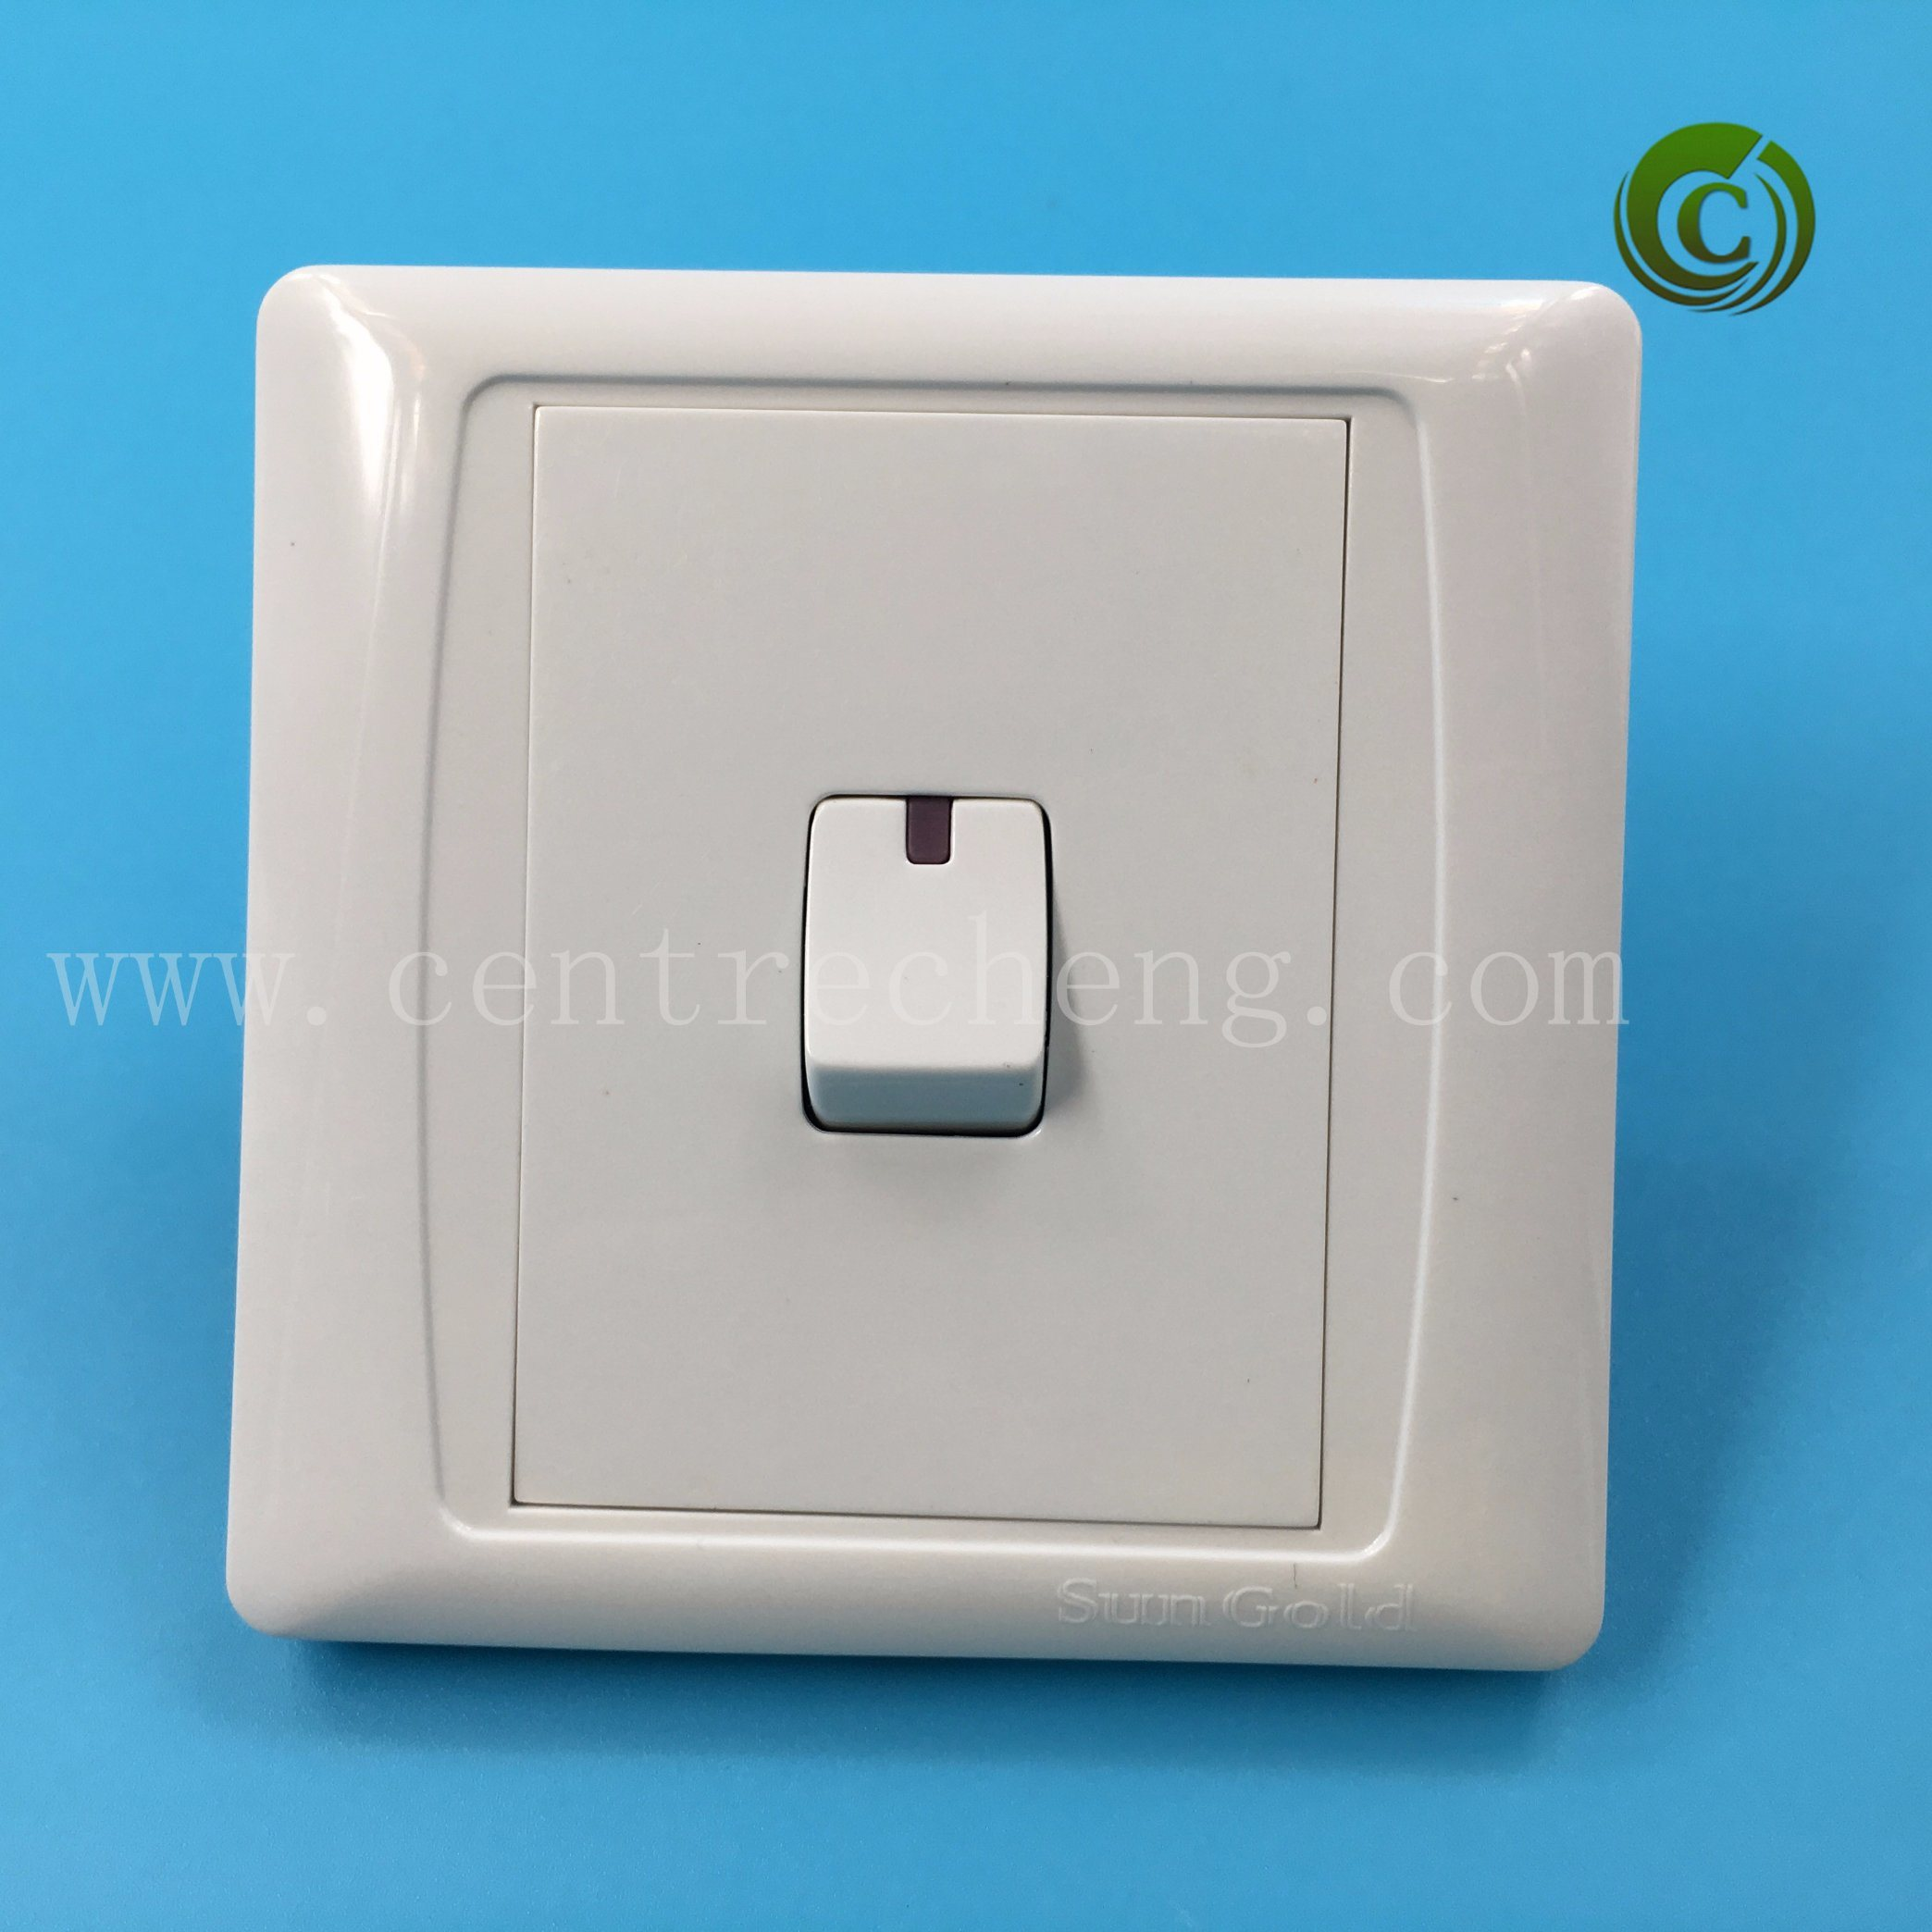 Contemporary Light Switch Panel Photo - Electrical Diagram Ideas ...